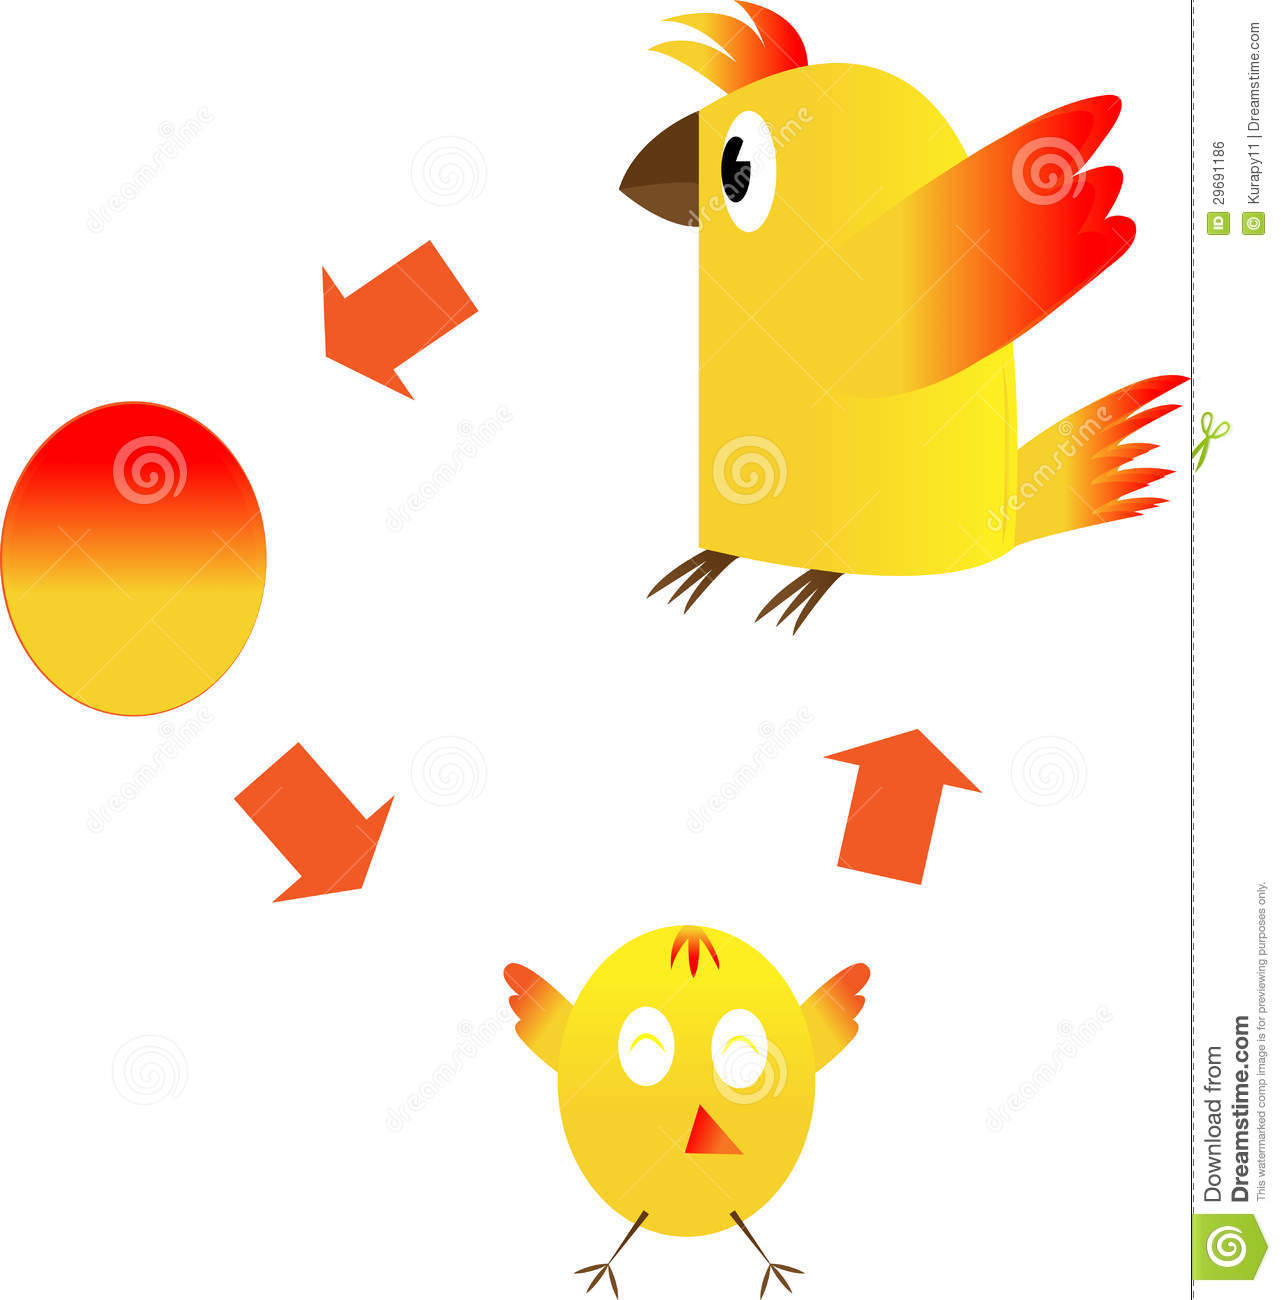 worksheet. Life Cycle Of A Chicken Worksheet. Worksheet Fun ...